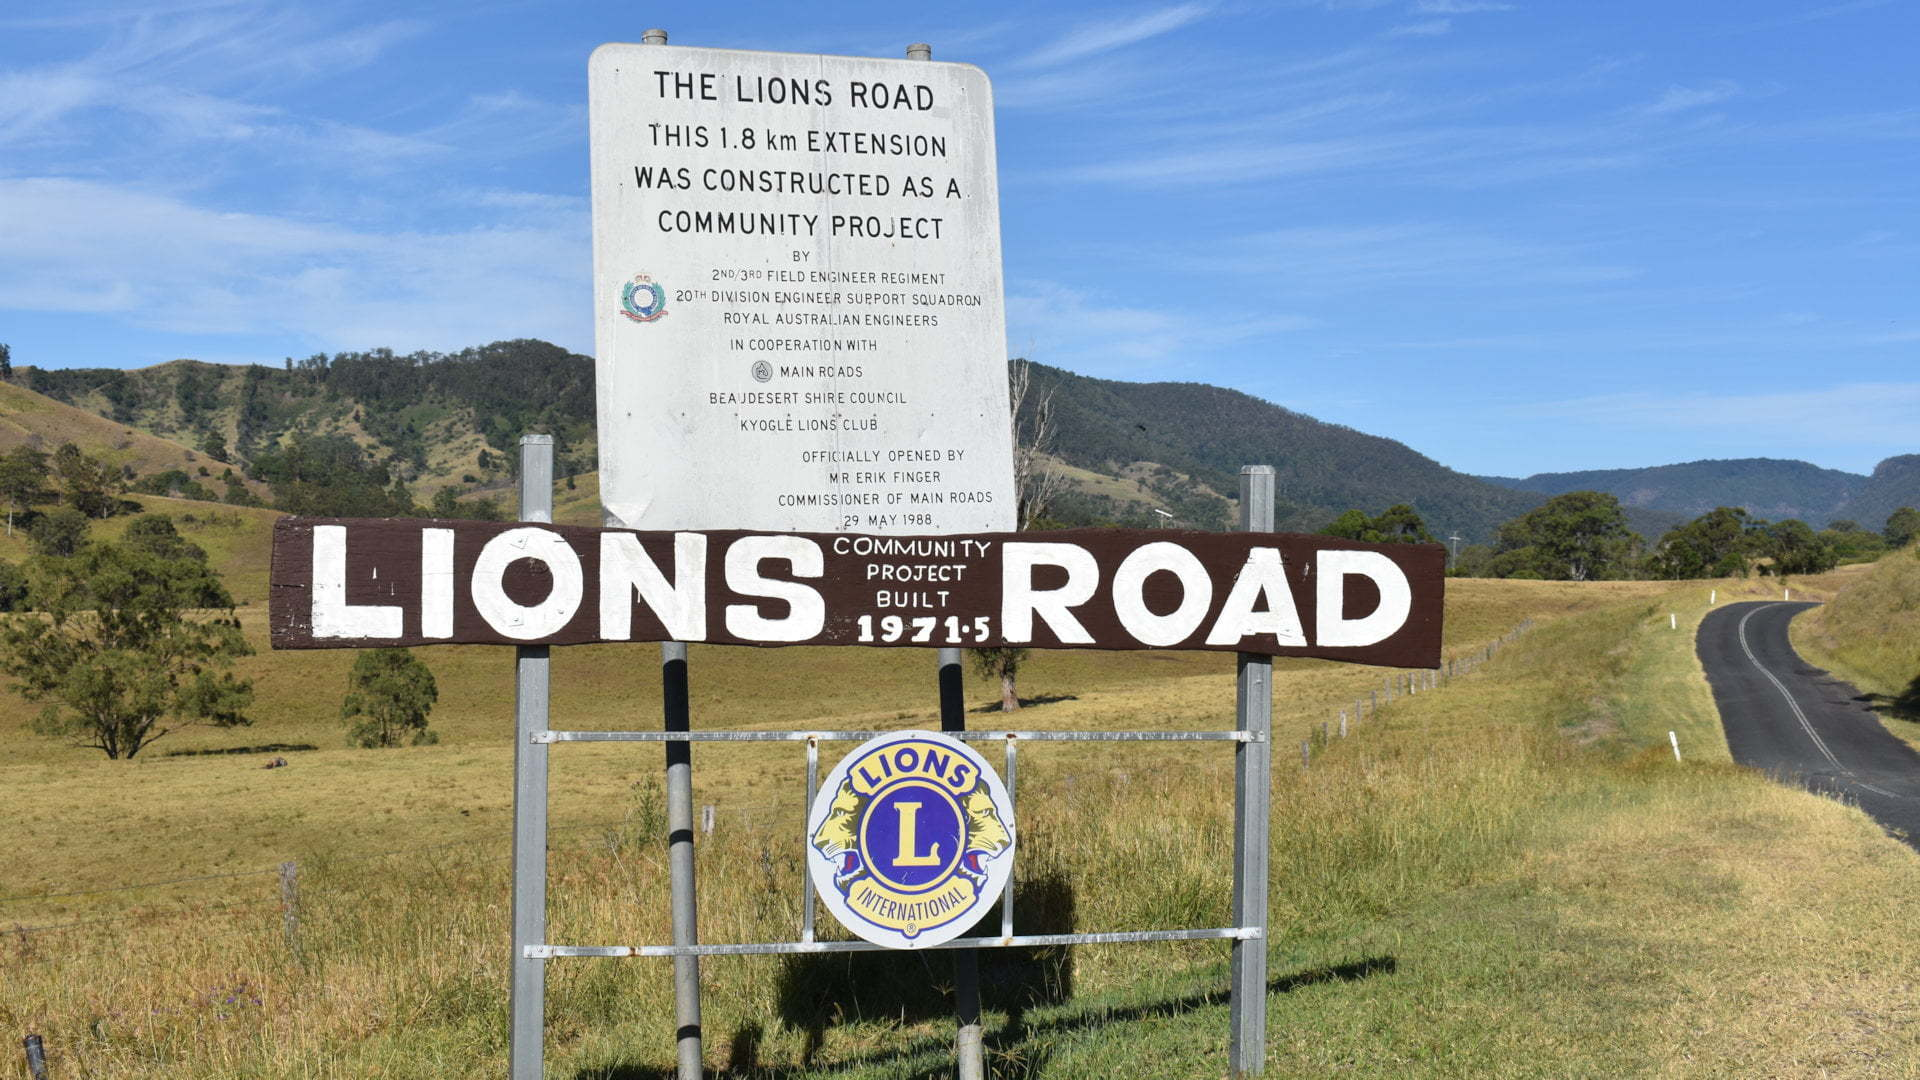 Lions Road at the Rathdowney end before crossing the border from Queensland to New South Wales